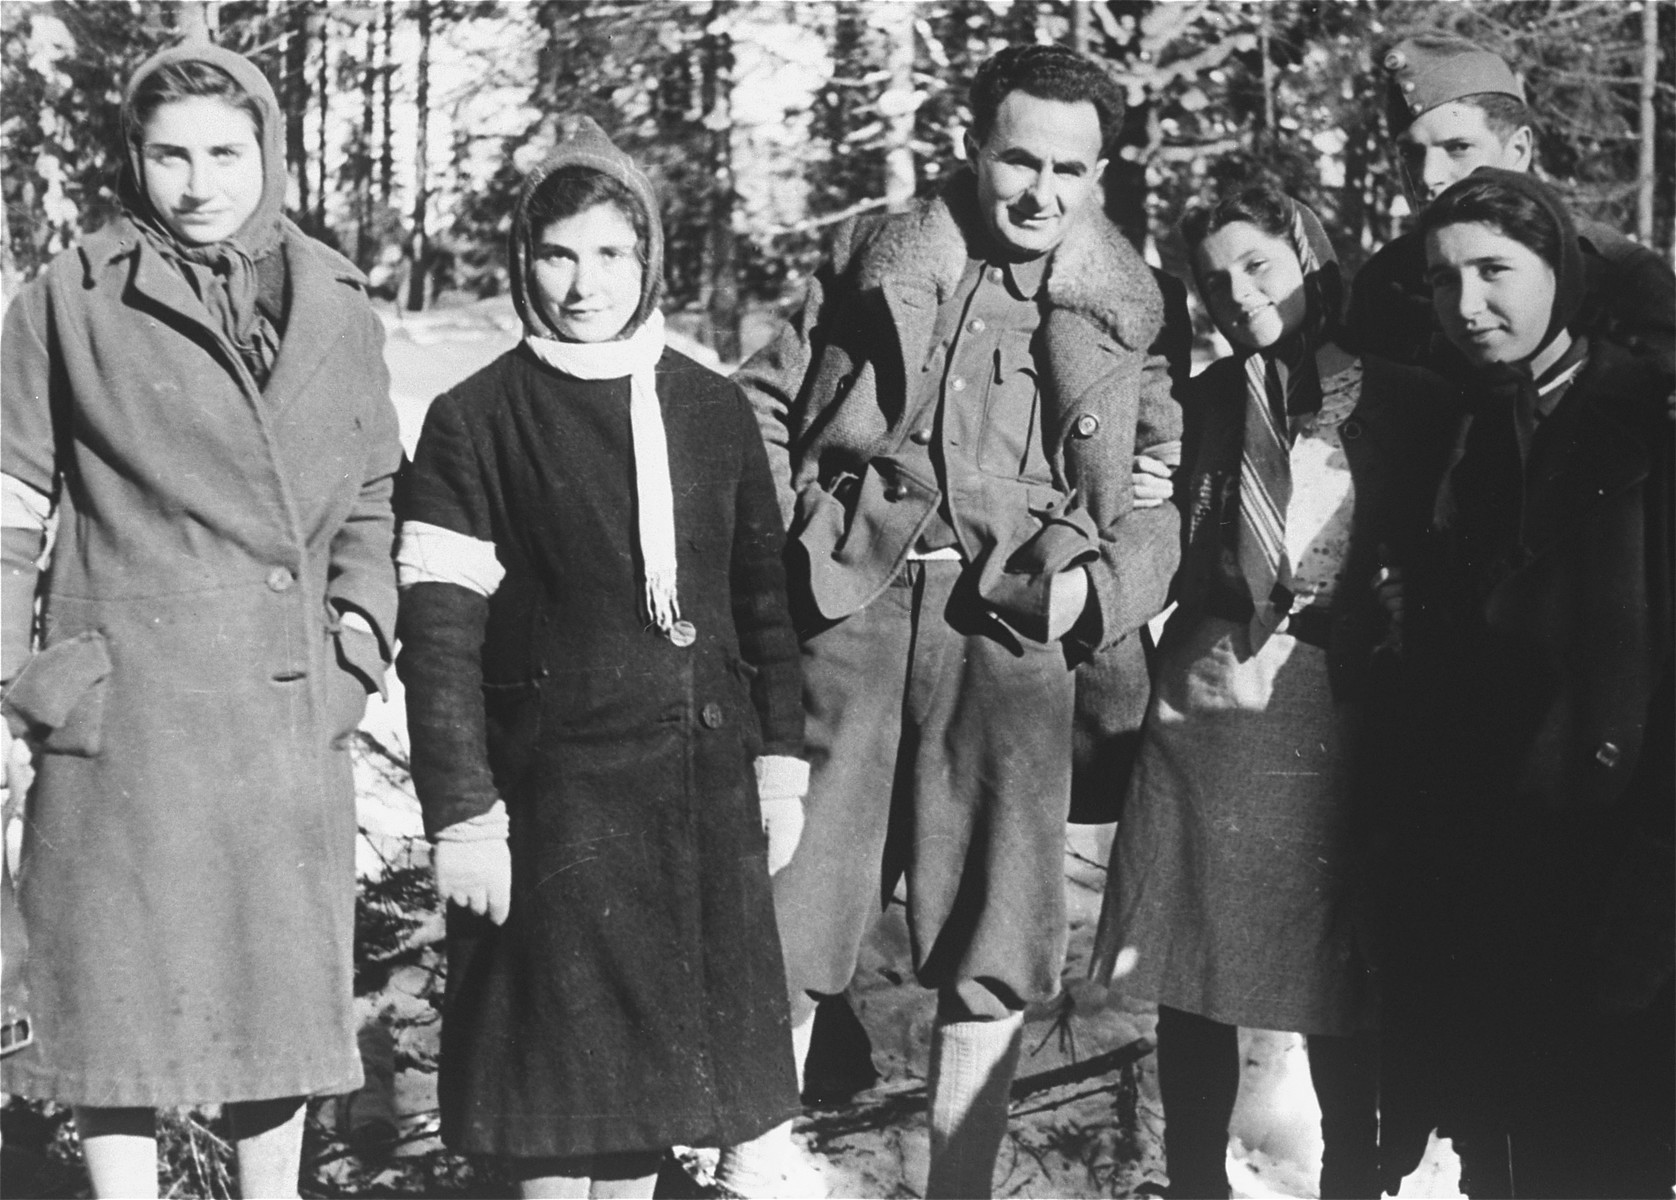 Local Jewish women wearing armbands pose with Jewish conscripts in the Hungarian Labor Service near the Hungarian-Jewish Labor Camp where Company 108/57 was housed.